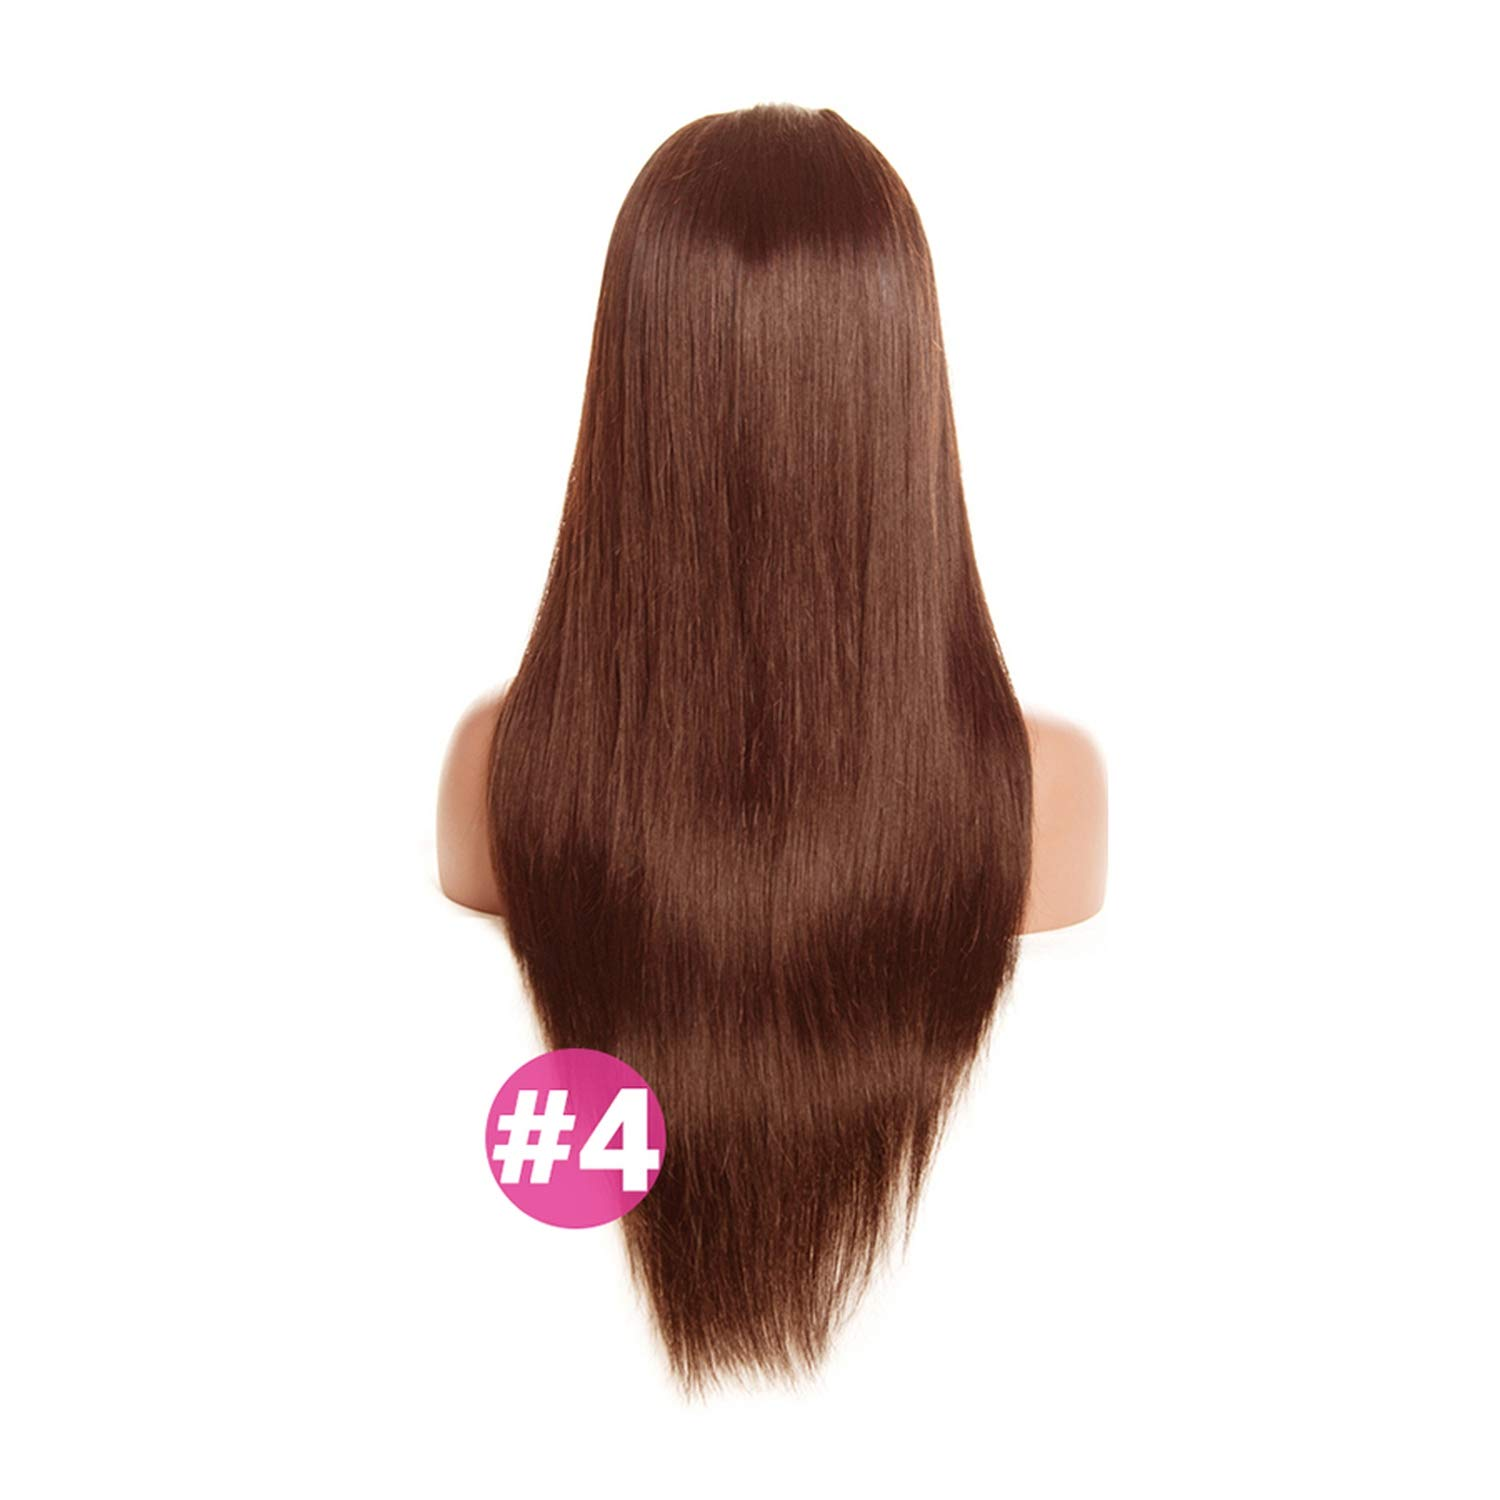 Light Brown Malaysian Straight Wig Lace Front Human Hair Wigs With Baby Hair Lace Front Wig Remy Hair #4 Pre Plucked Hairline,#4,26inches,130%